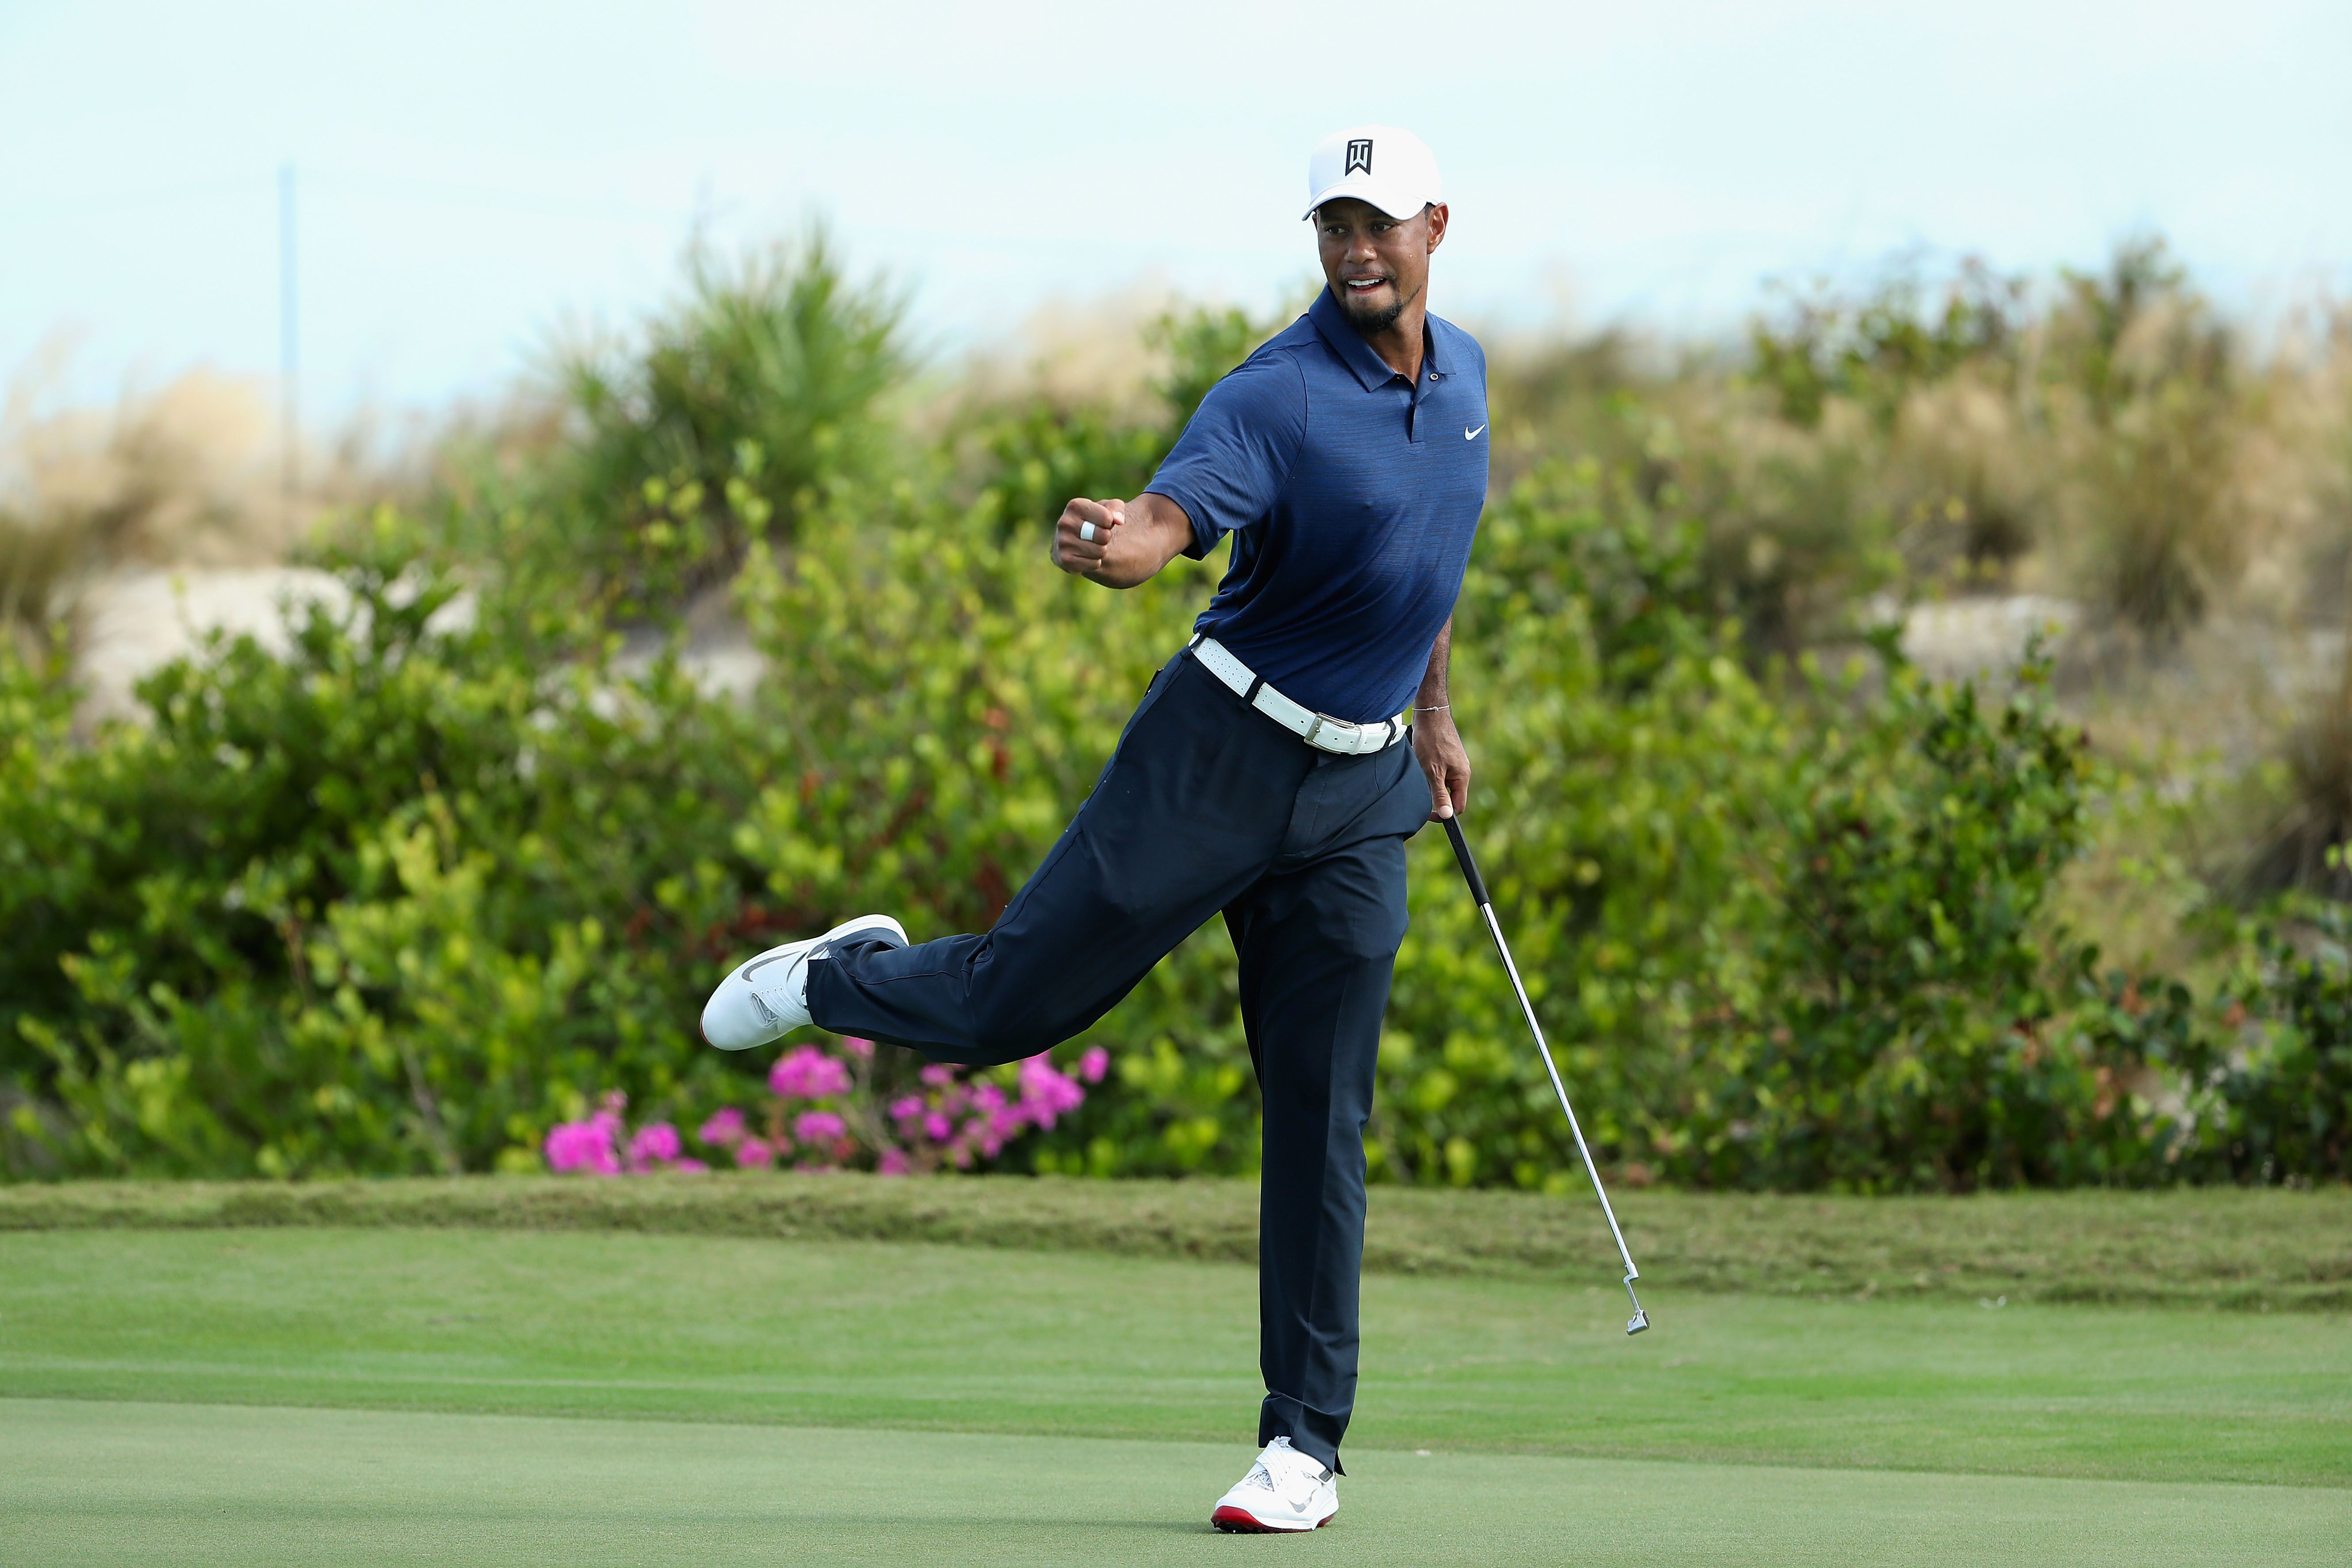 Top 25 Golfers Of All Time Ranking The Men